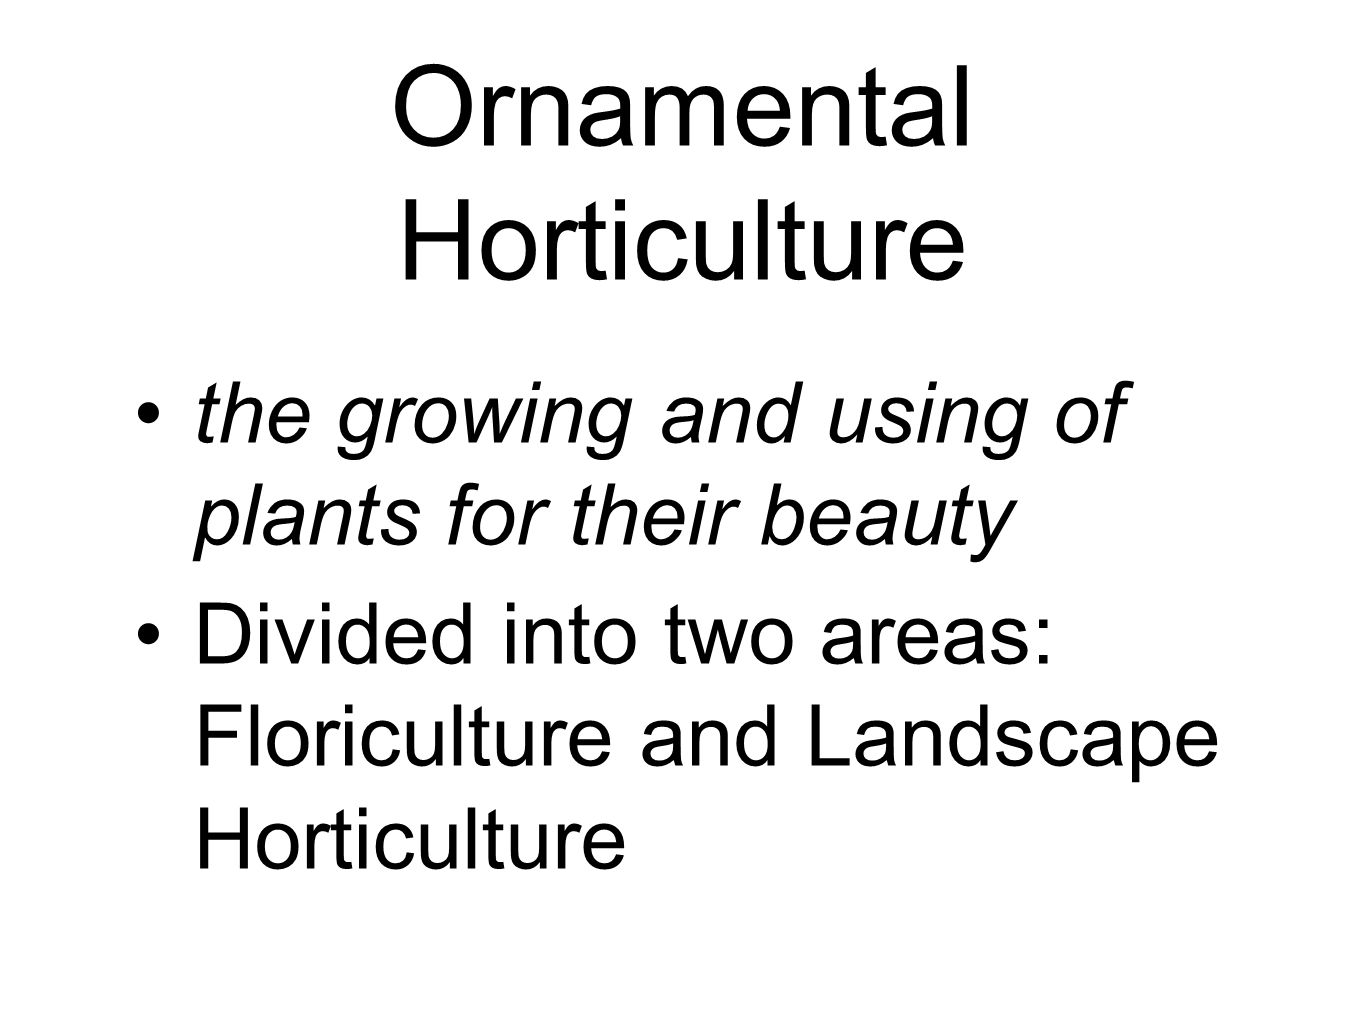 Ornamental Horticulture the growing and using of plants for their beauty Divided into two areas: Floriculture and Landscape Horticulture